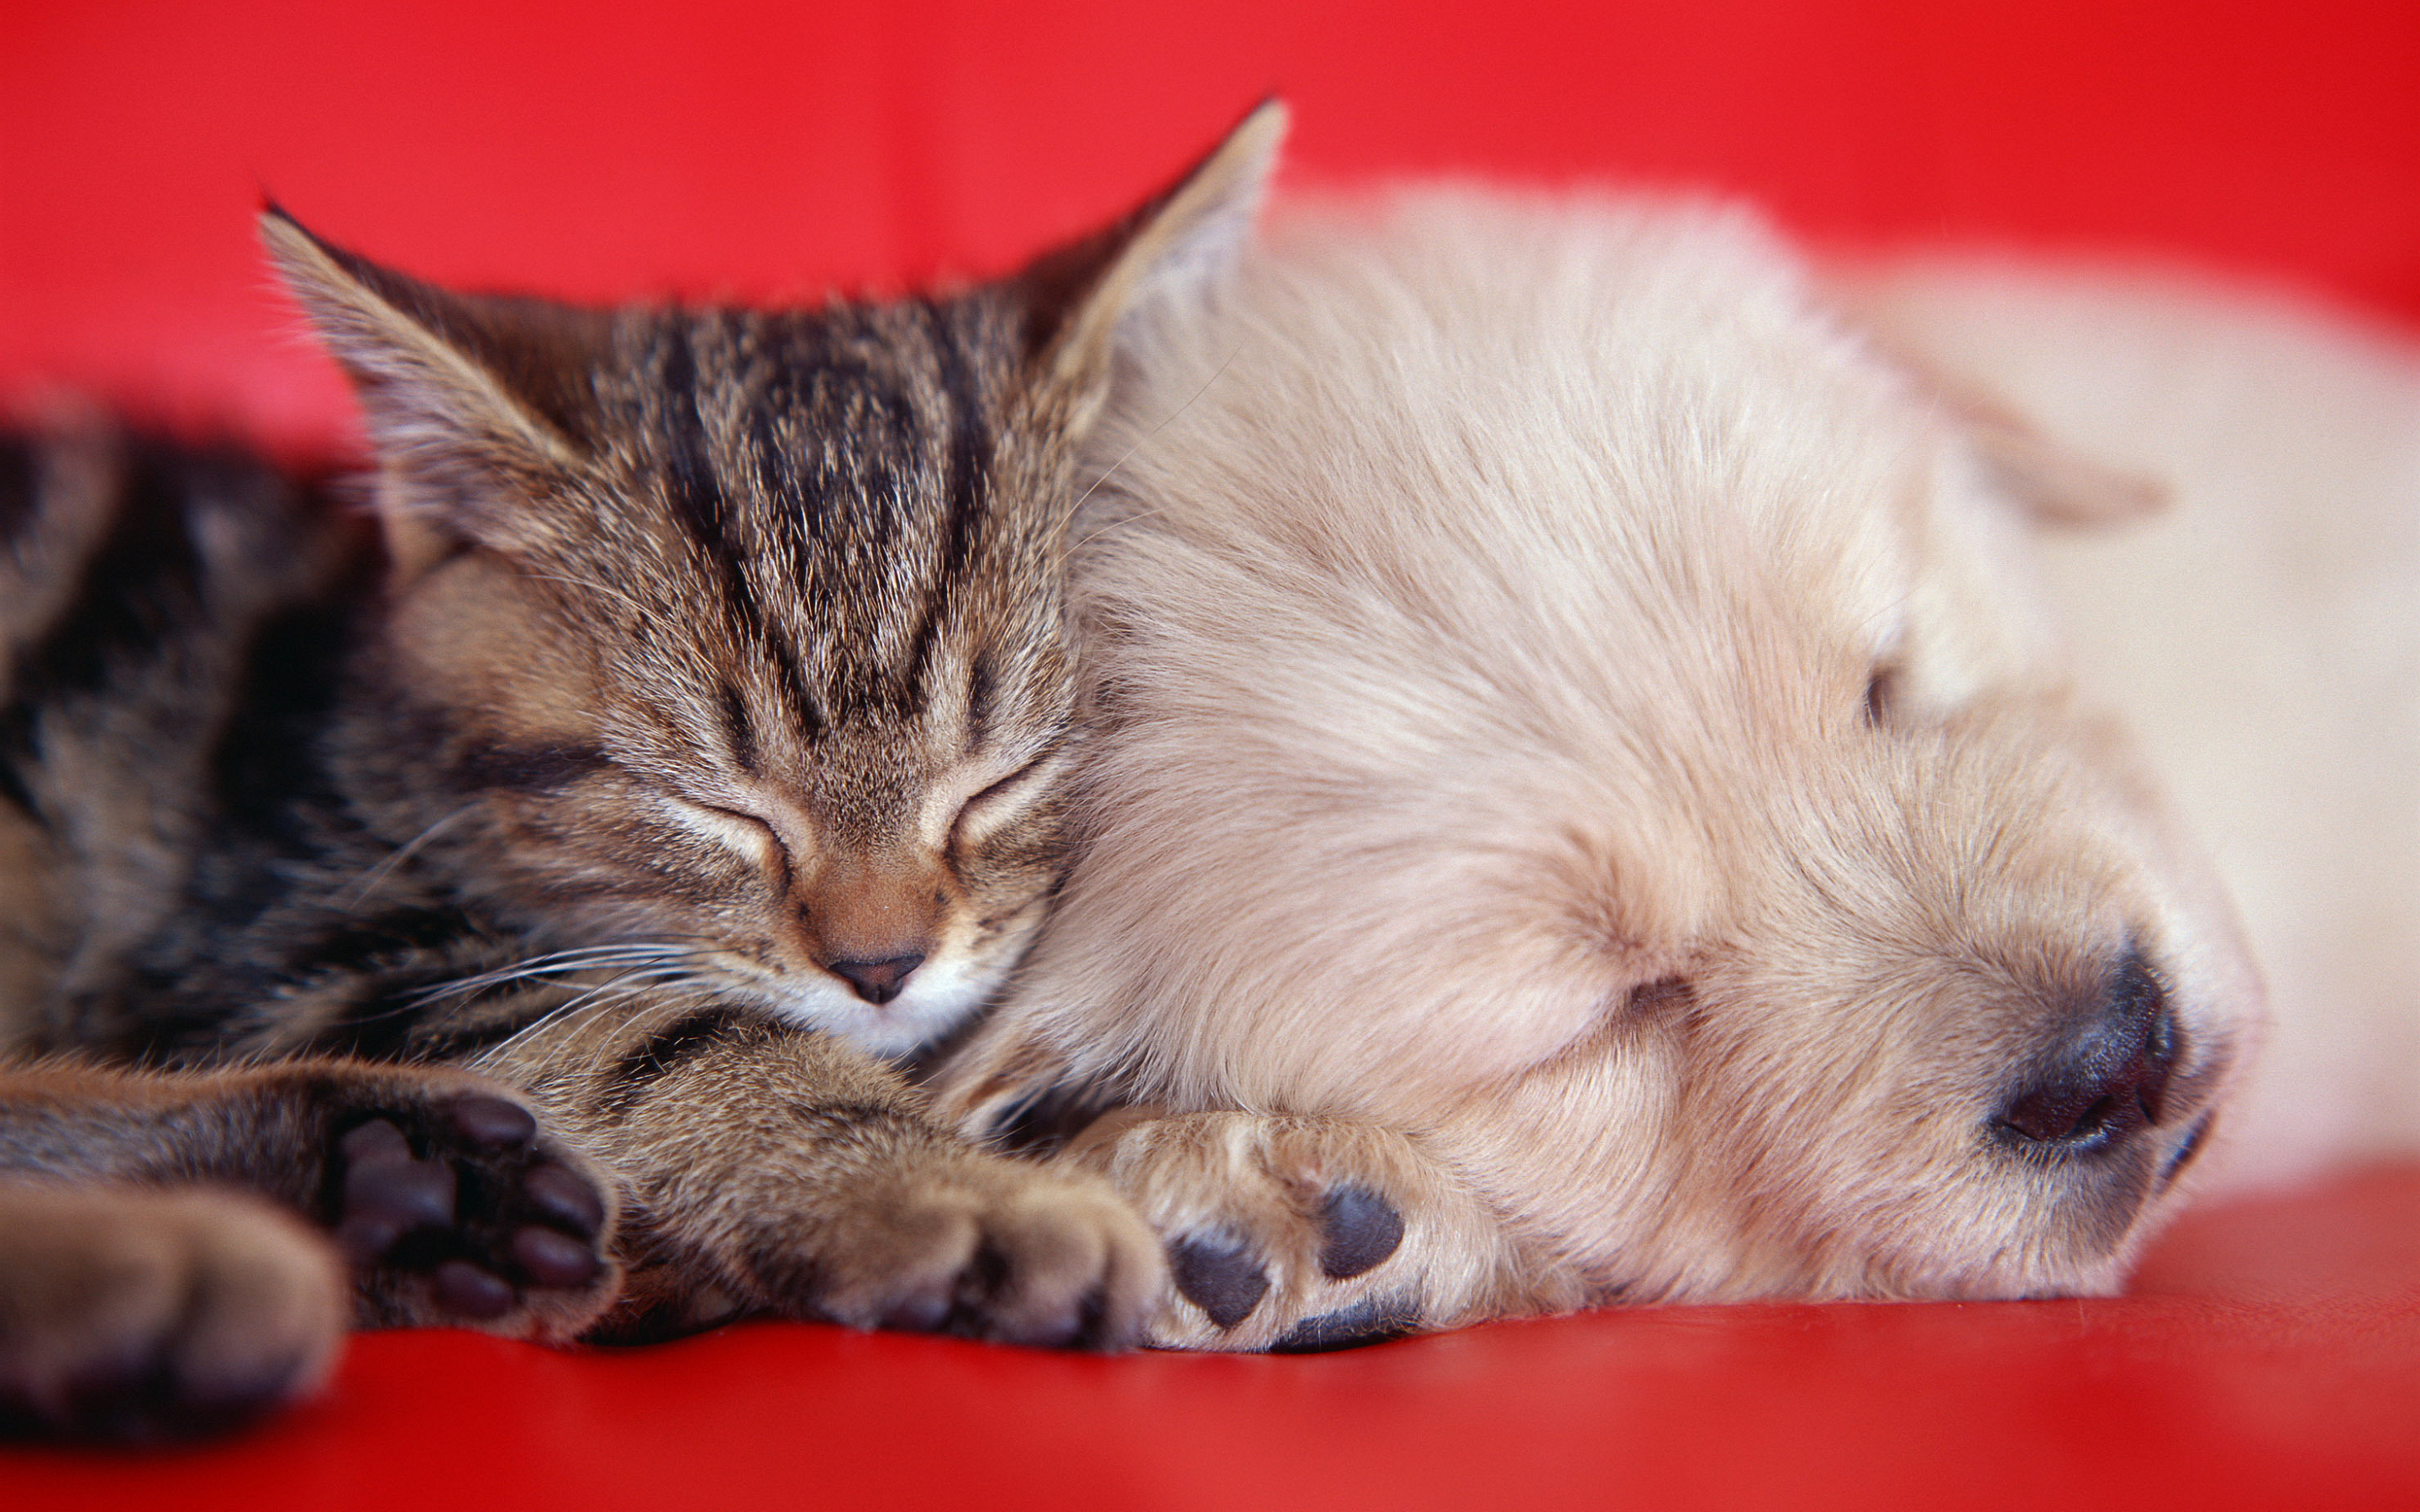 Kitty and puppy sleeping